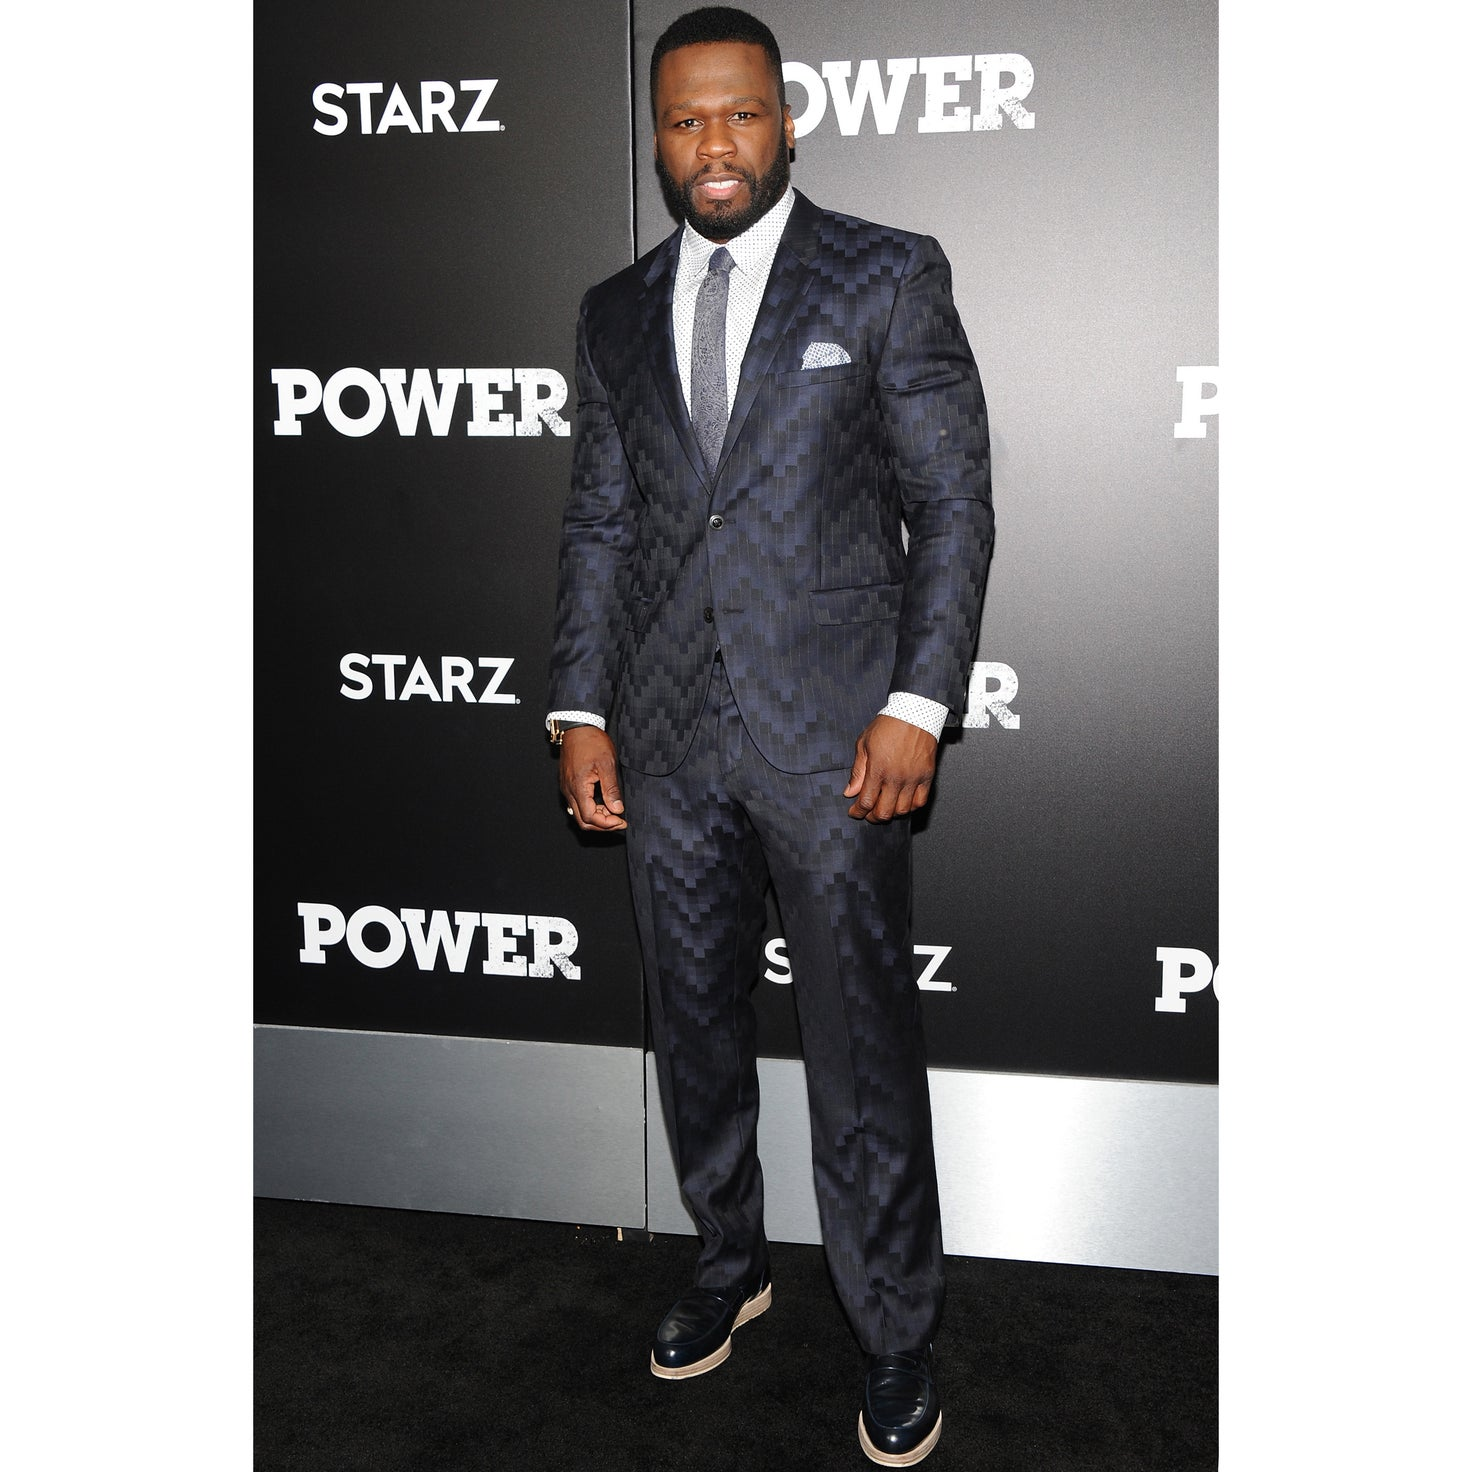 50 Cent Reveals His Aunt Was 'Traumatized' By His Full-Frontal Nude Scene on 'Power'